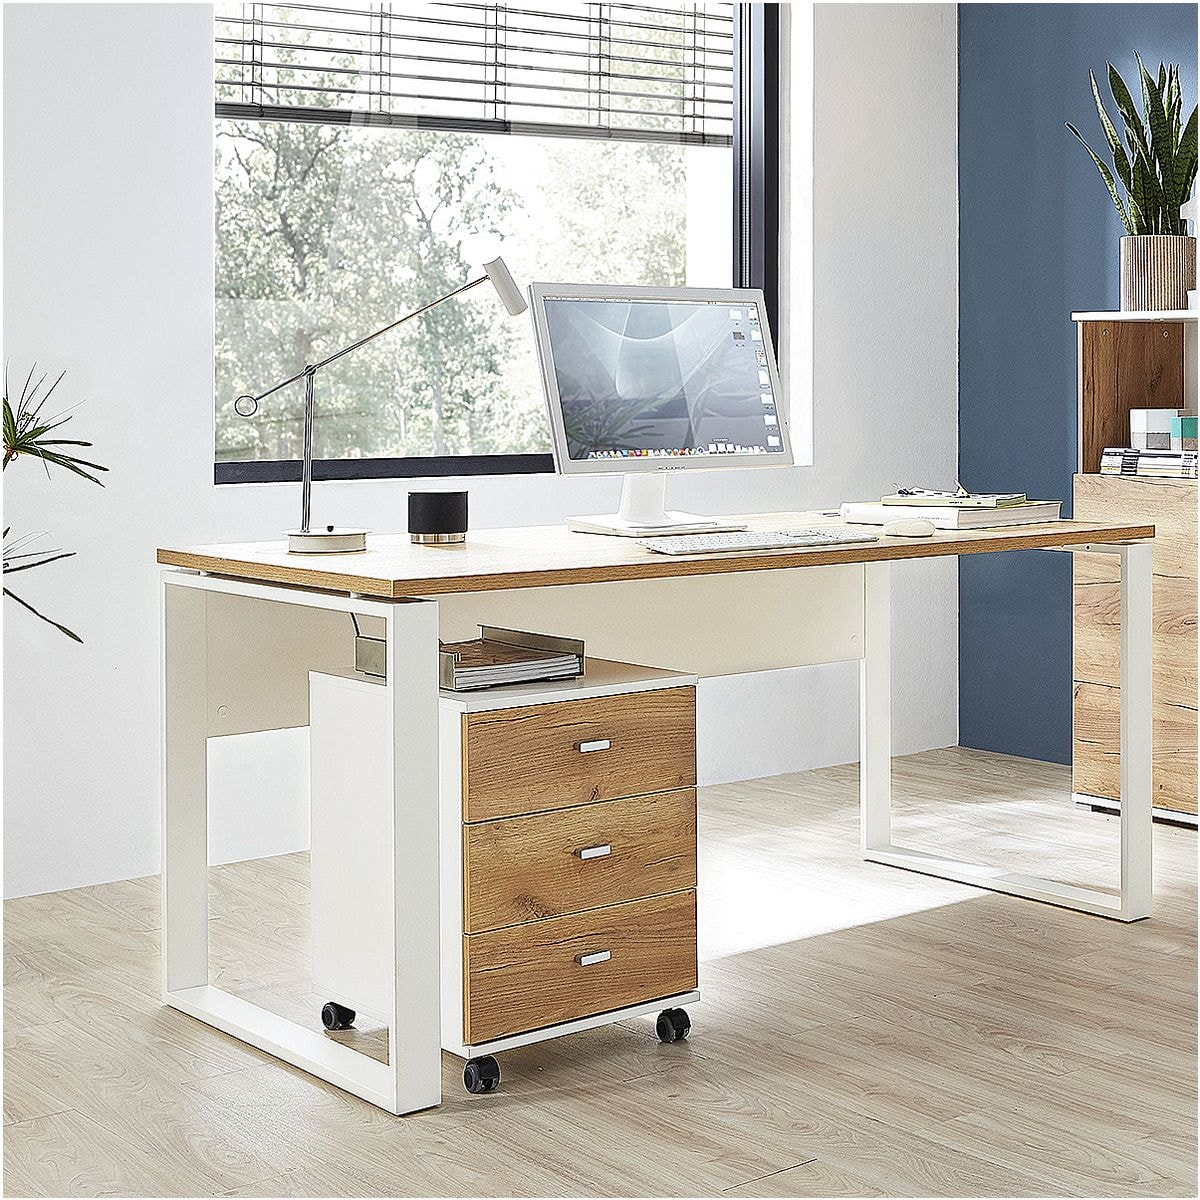 germania werke m bel set lioni 2 teilig schreibtisch mit rollcontainer bei otto office. Black Bedroom Furniture Sets. Home Design Ideas